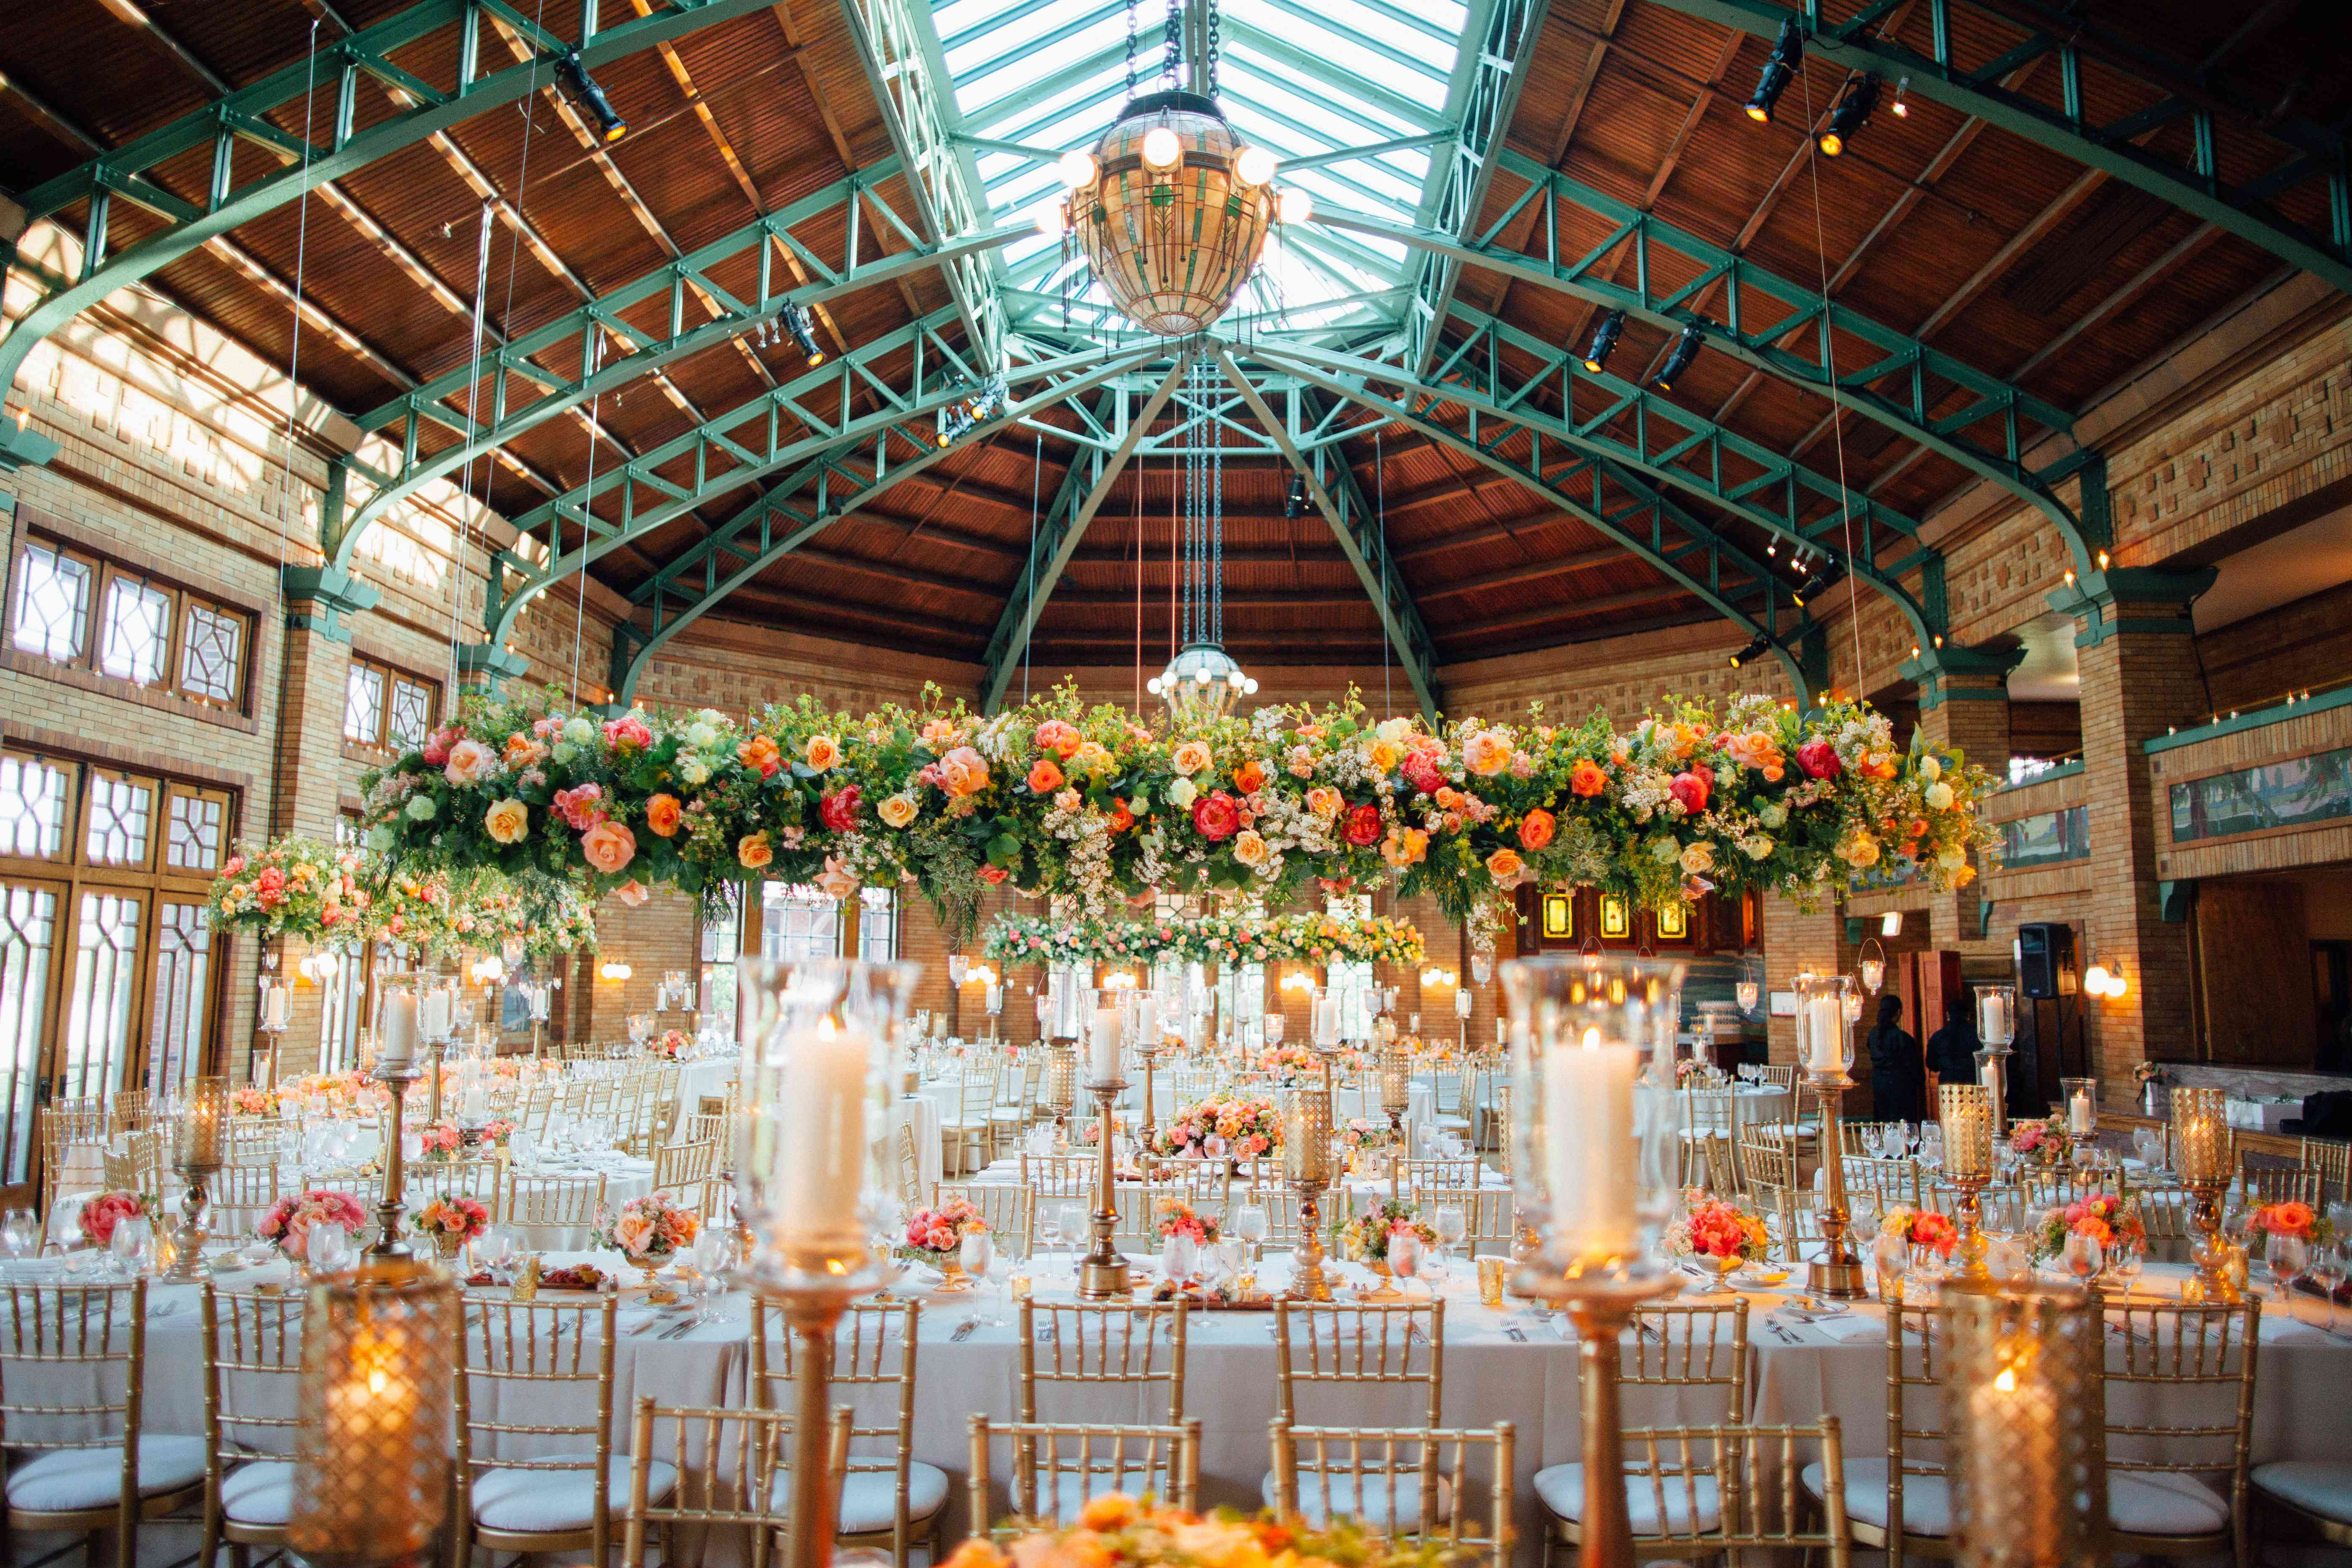 <p>Overhanging Florals and Greenery</p><br><br>